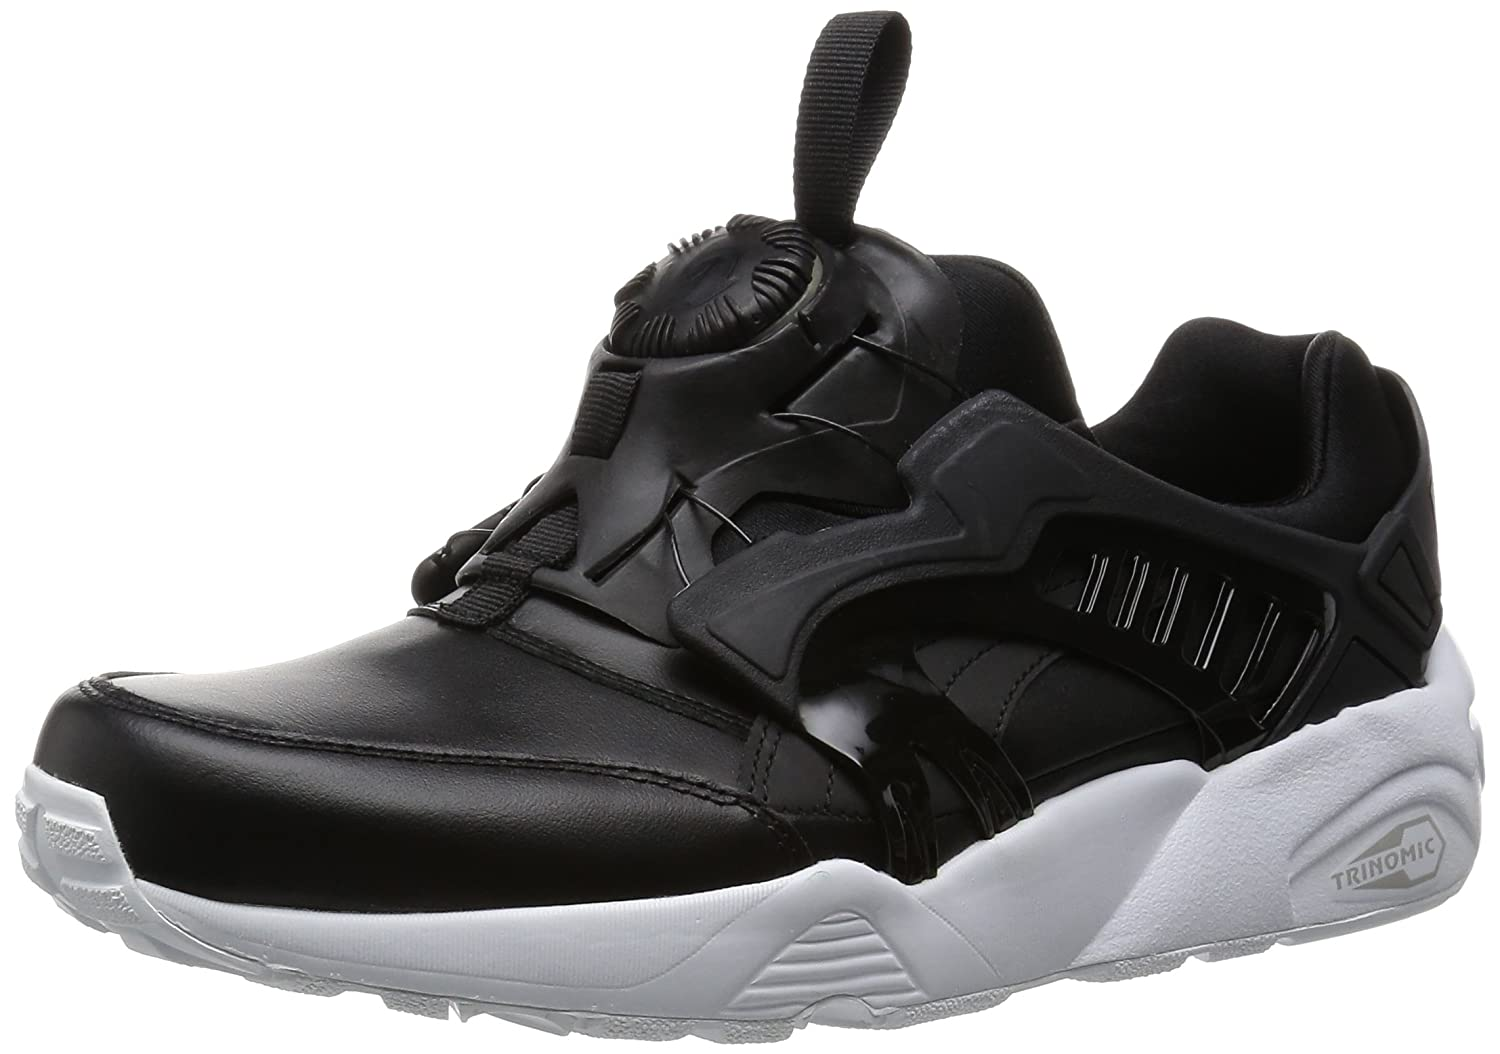 Puma Disc Blaze Leather 361979 01 Herrenschuhe Lifestyle Leder Turnschuhe